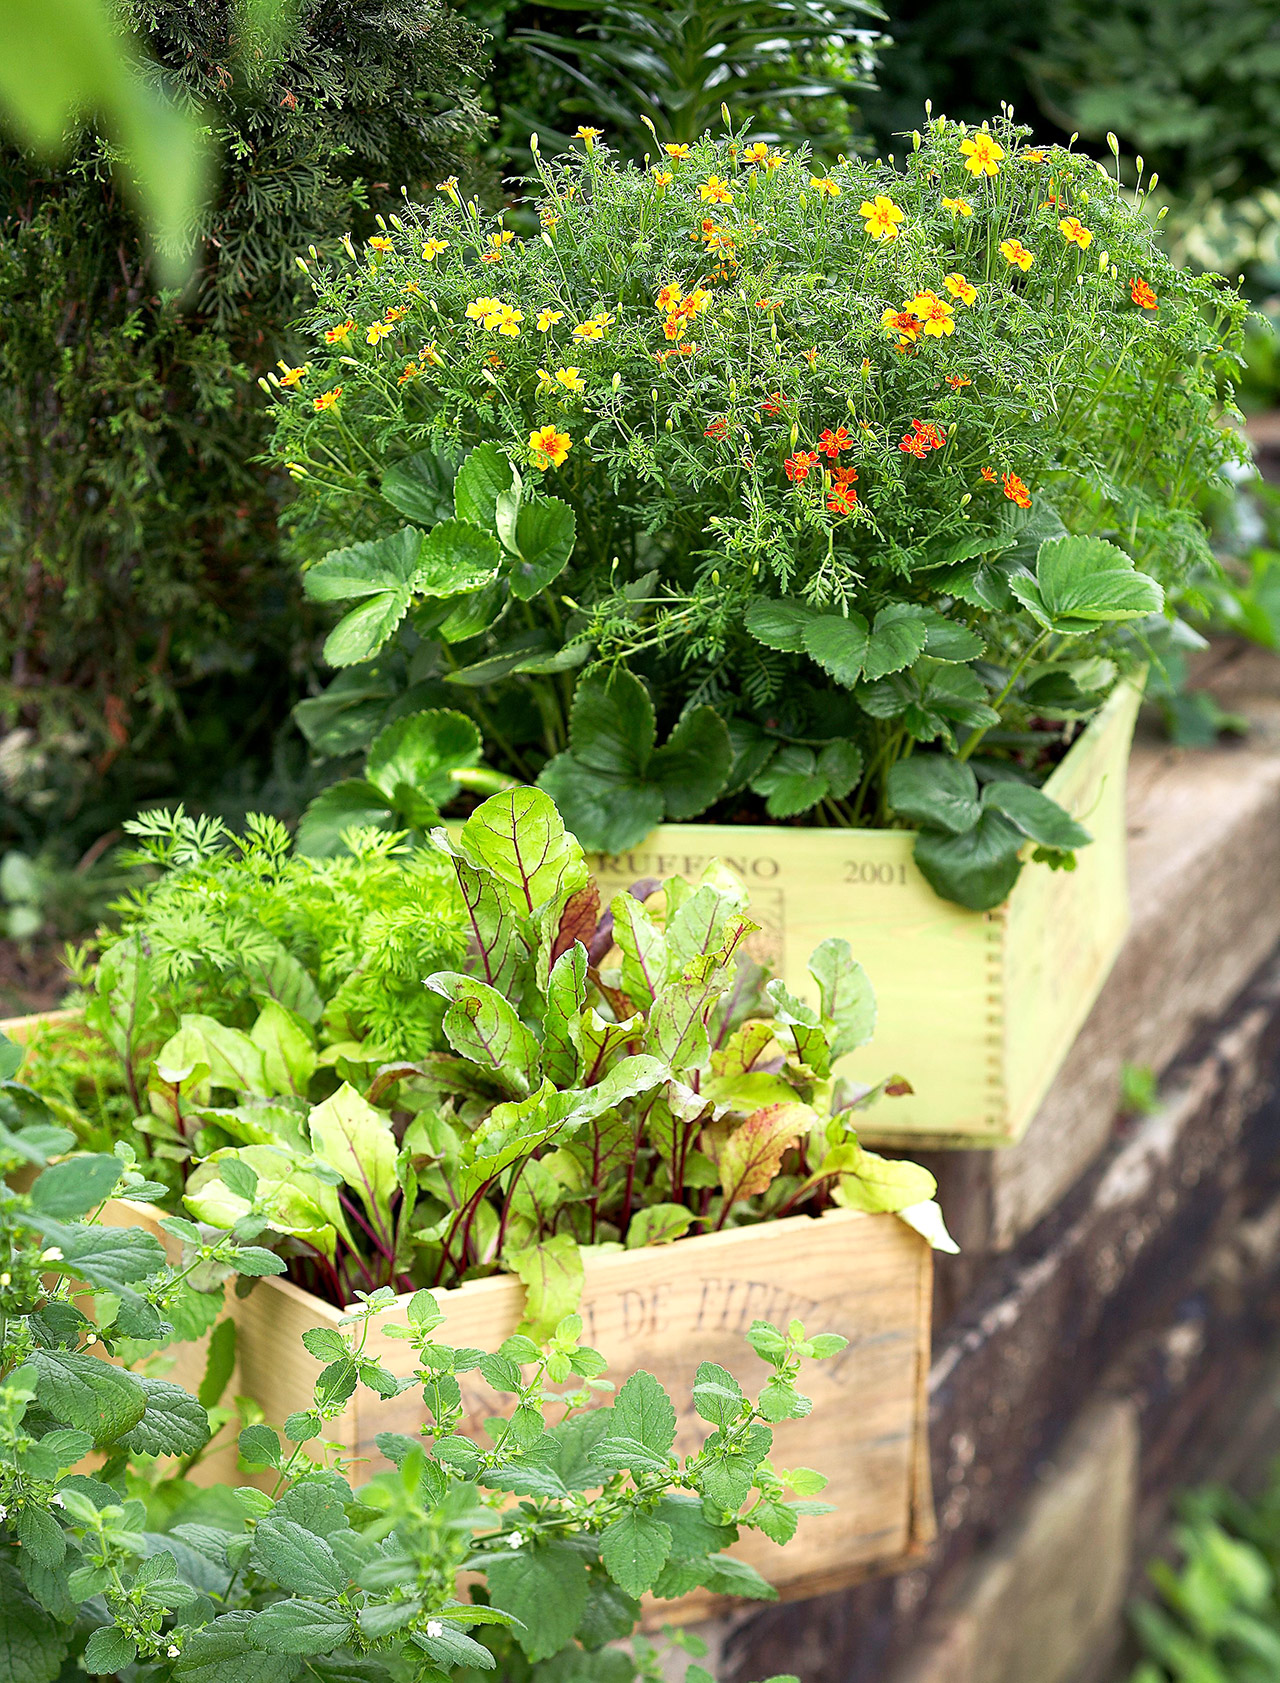 wine crates planted with flowers and vegetables